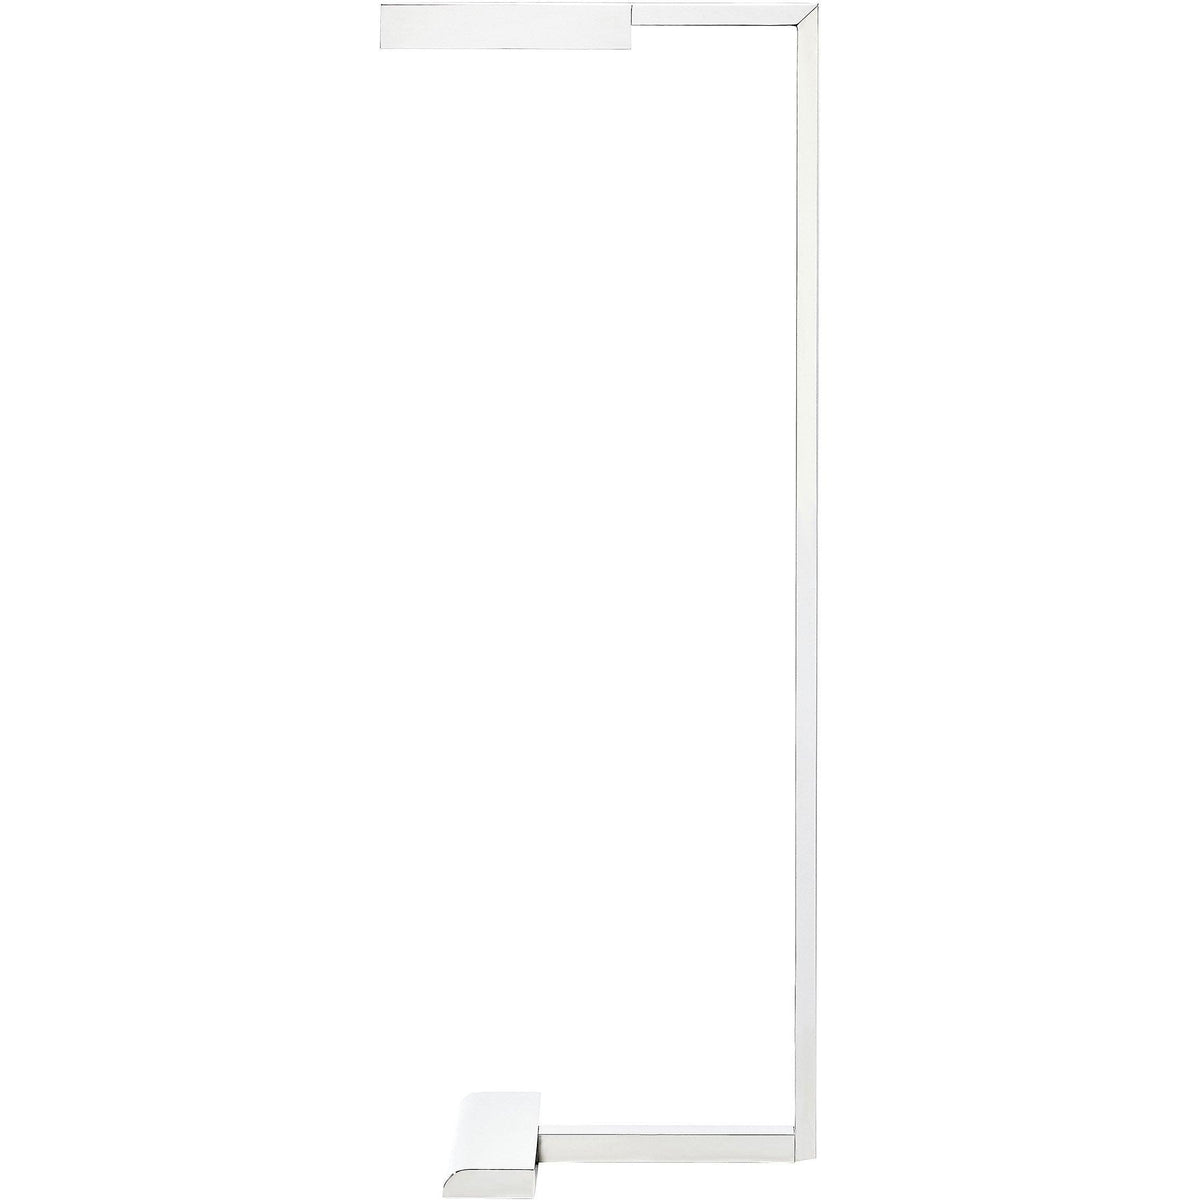 Tech Lighting - 700PRTDES38N-LED927 - LED Floor Lamp - Dessau - Polished Nickel